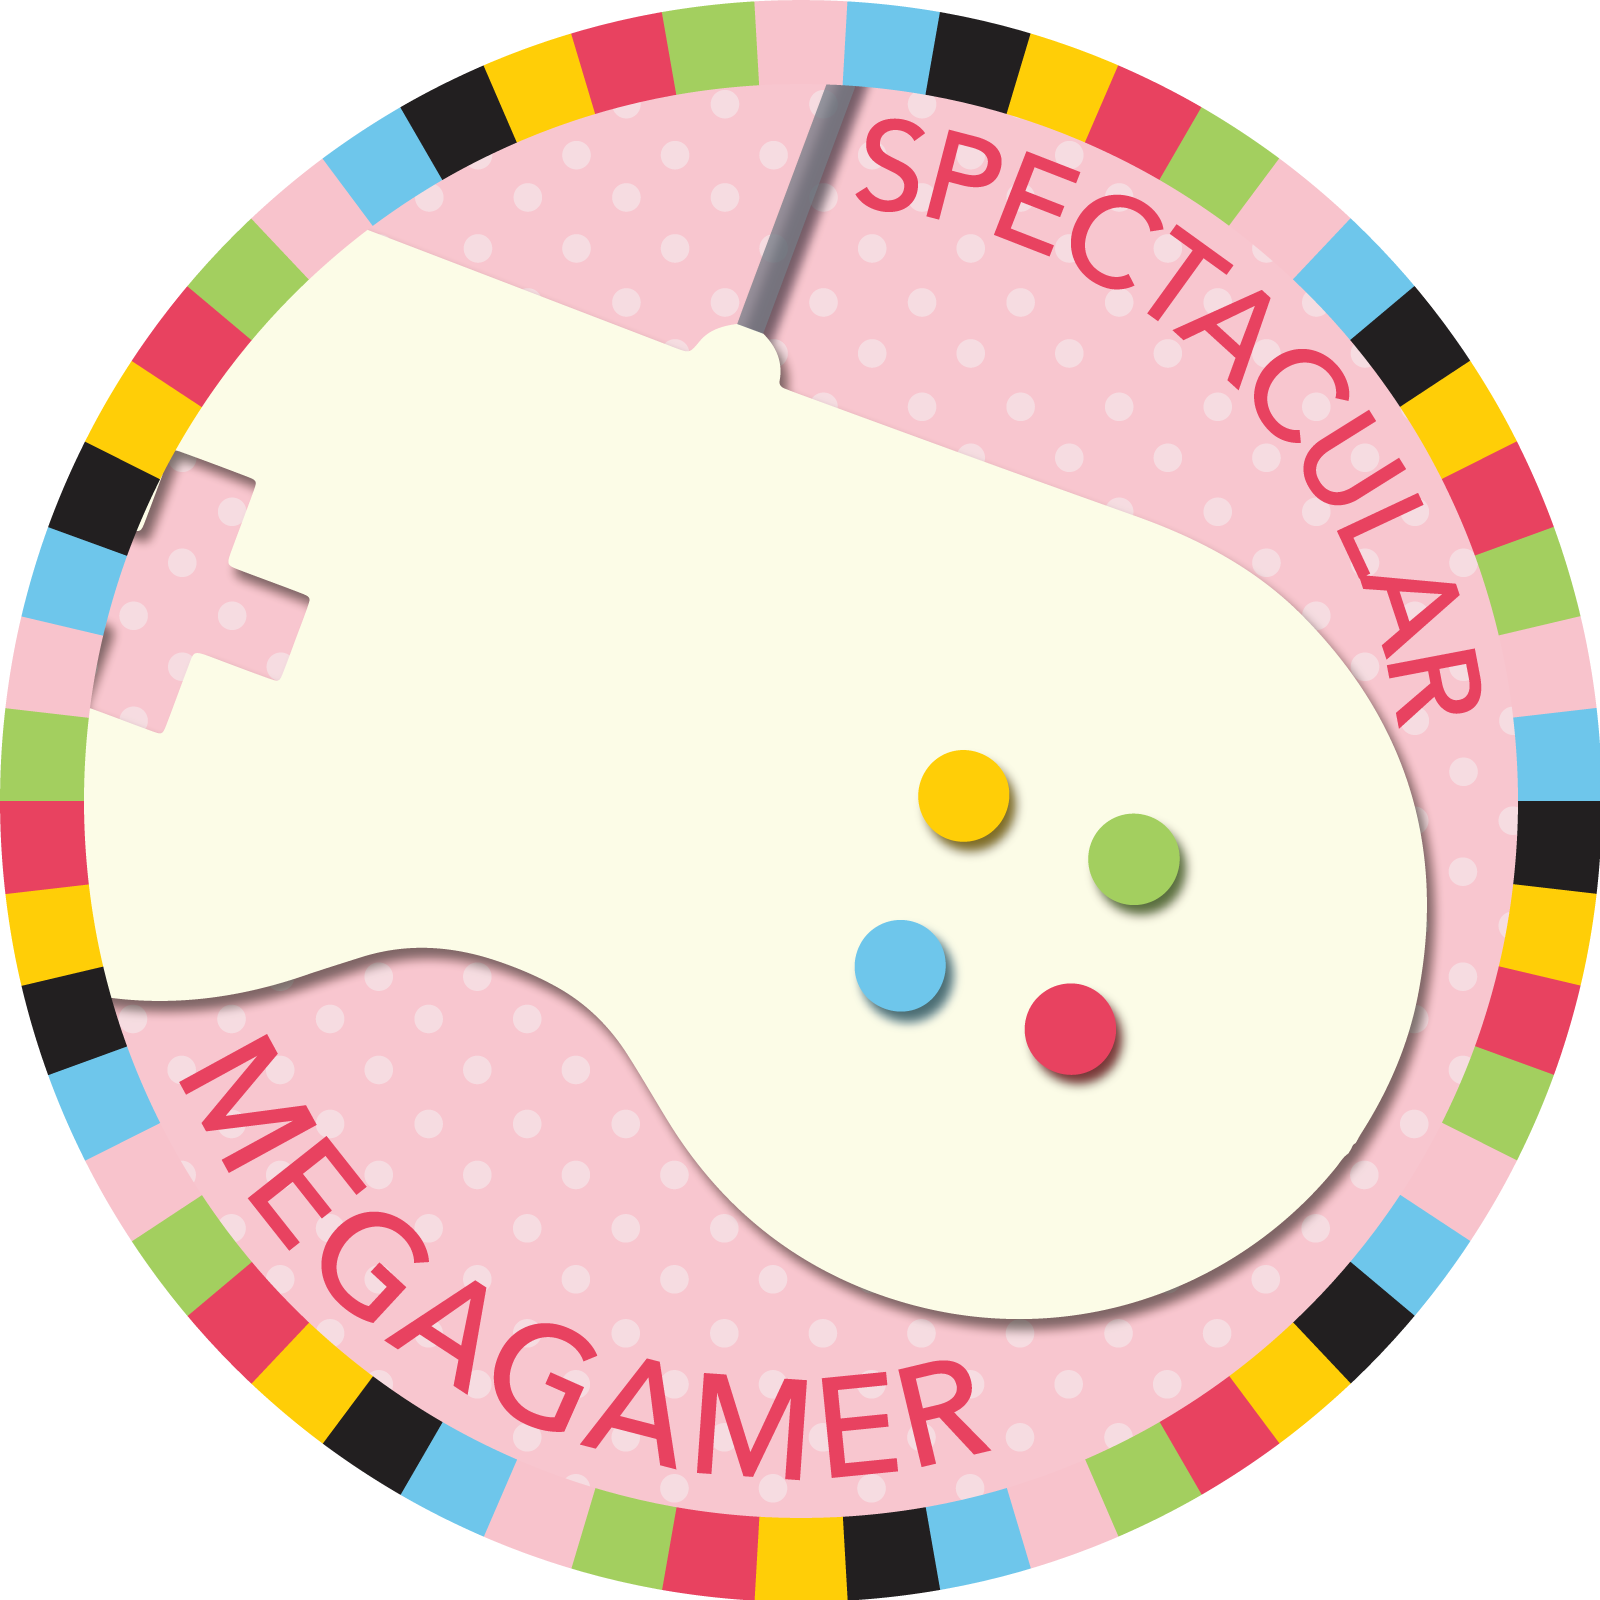 Summer Game Spectacular Mega-Gamer badge image